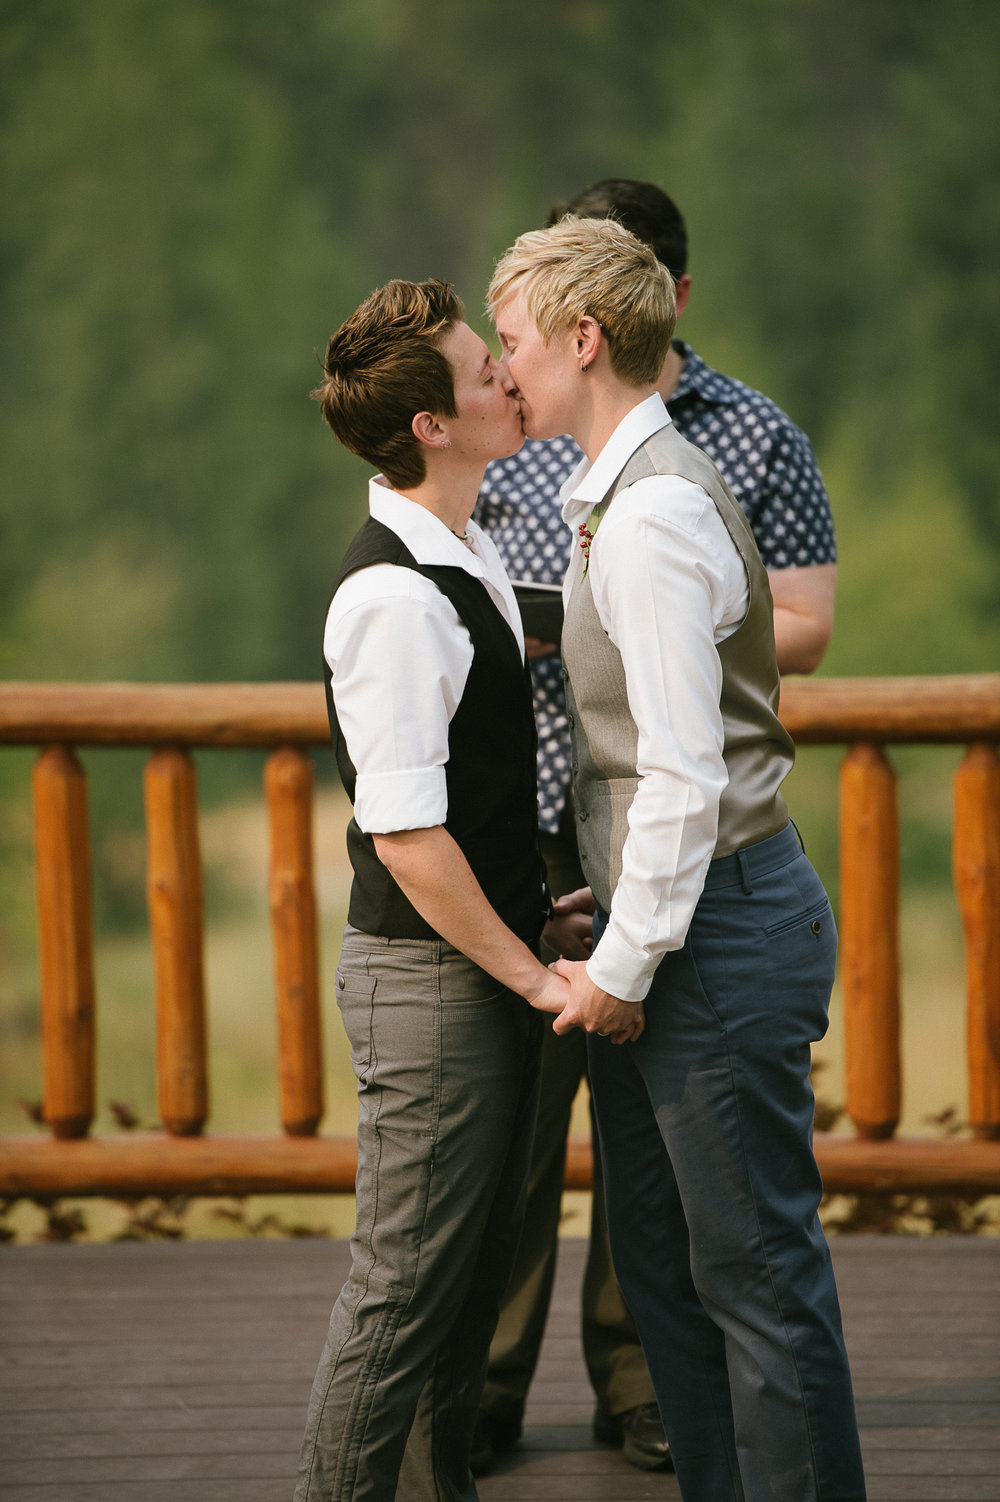 Glacier Montana Wedding_Elly Maurer + Frankie Dashiell Wedding_Beautiful Outdoor Wedding_Kelsey Lane Photography-4995.jpg